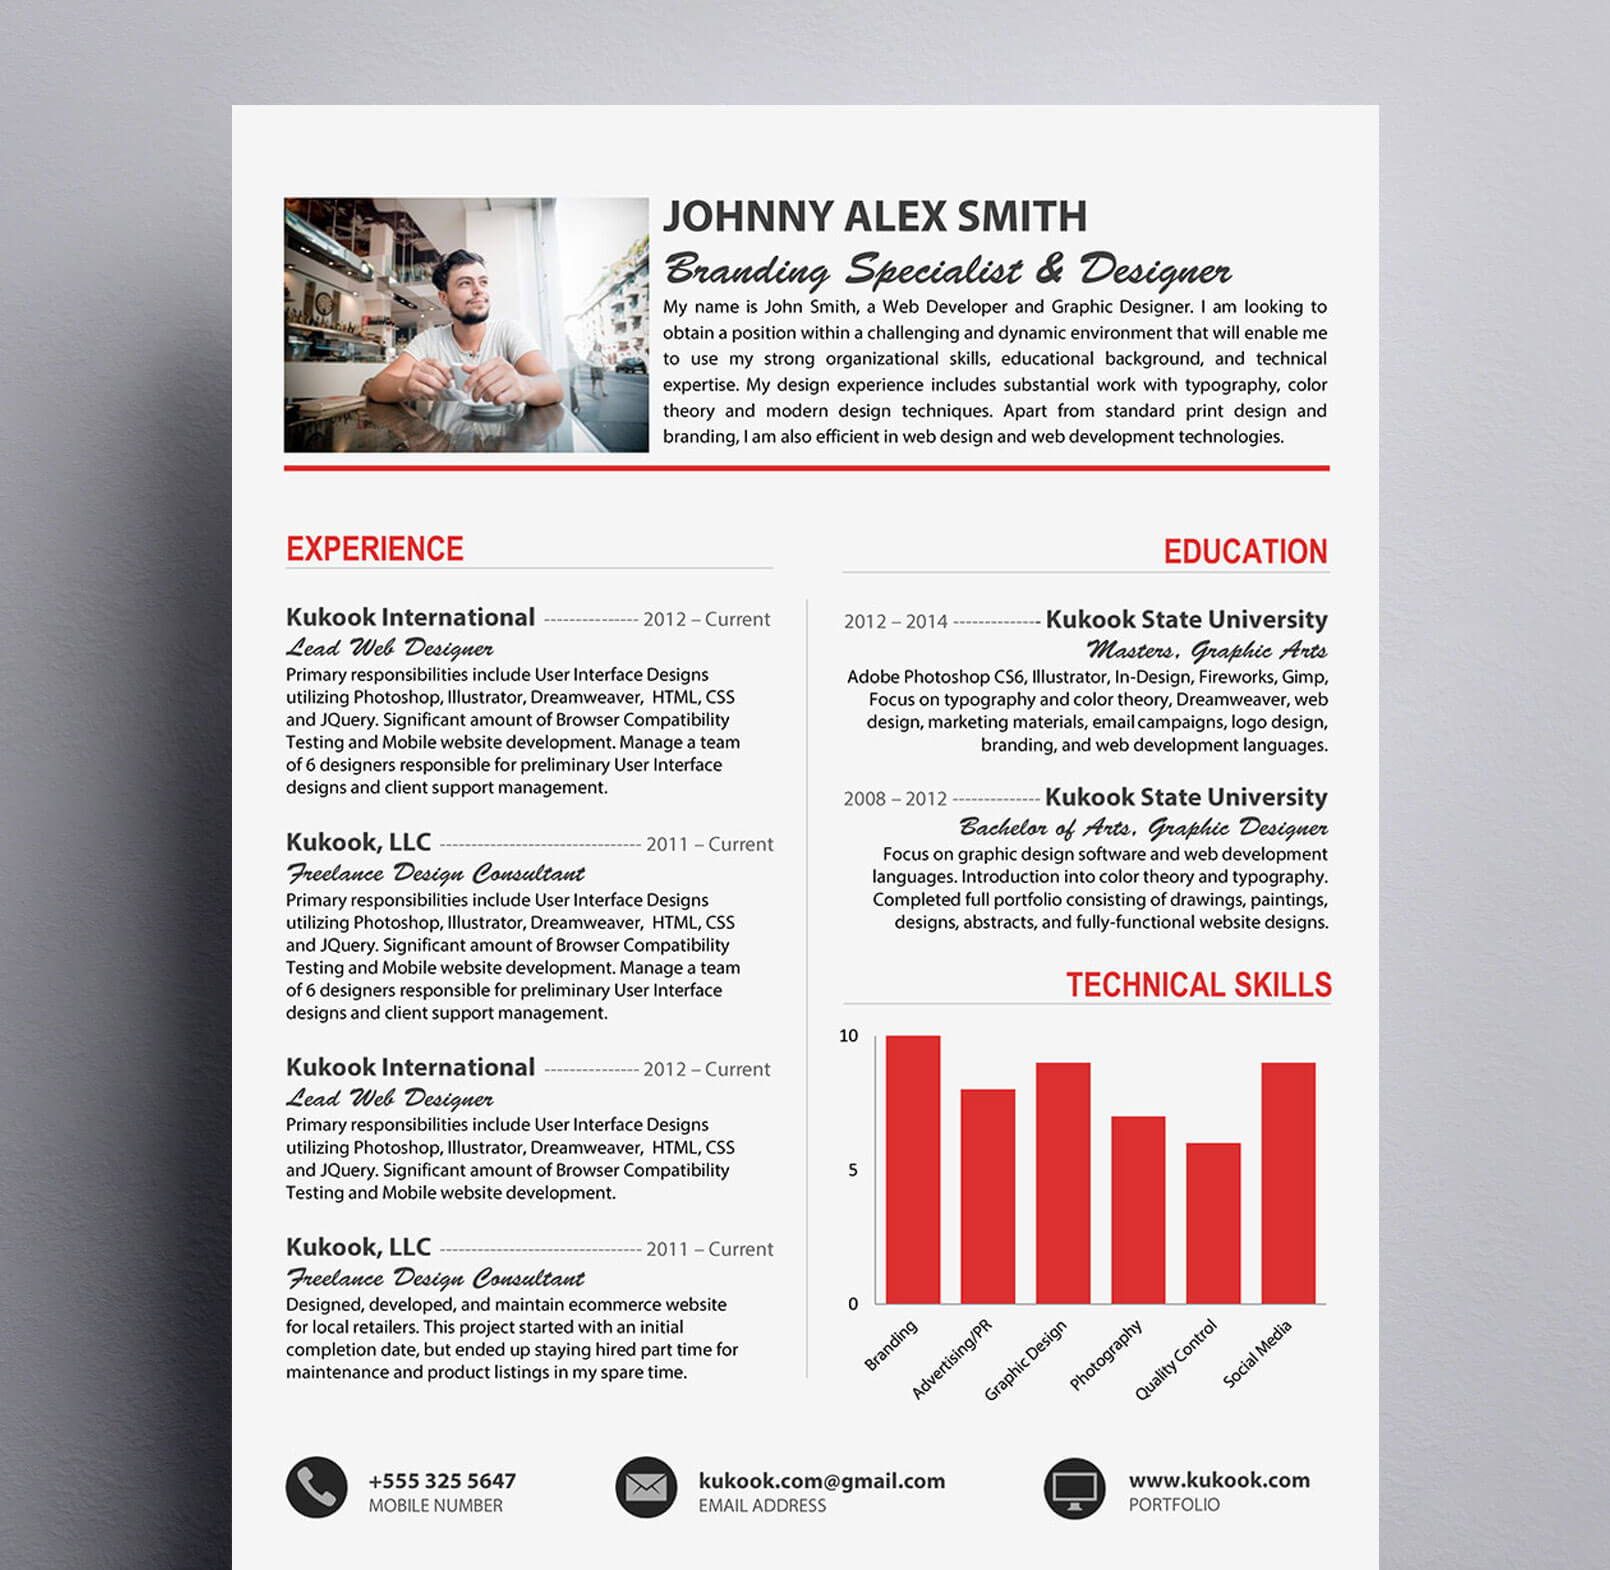 clean resume template perfect for creative professionals kukook. Black Bedroom Furniture Sets. Home Design Ideas